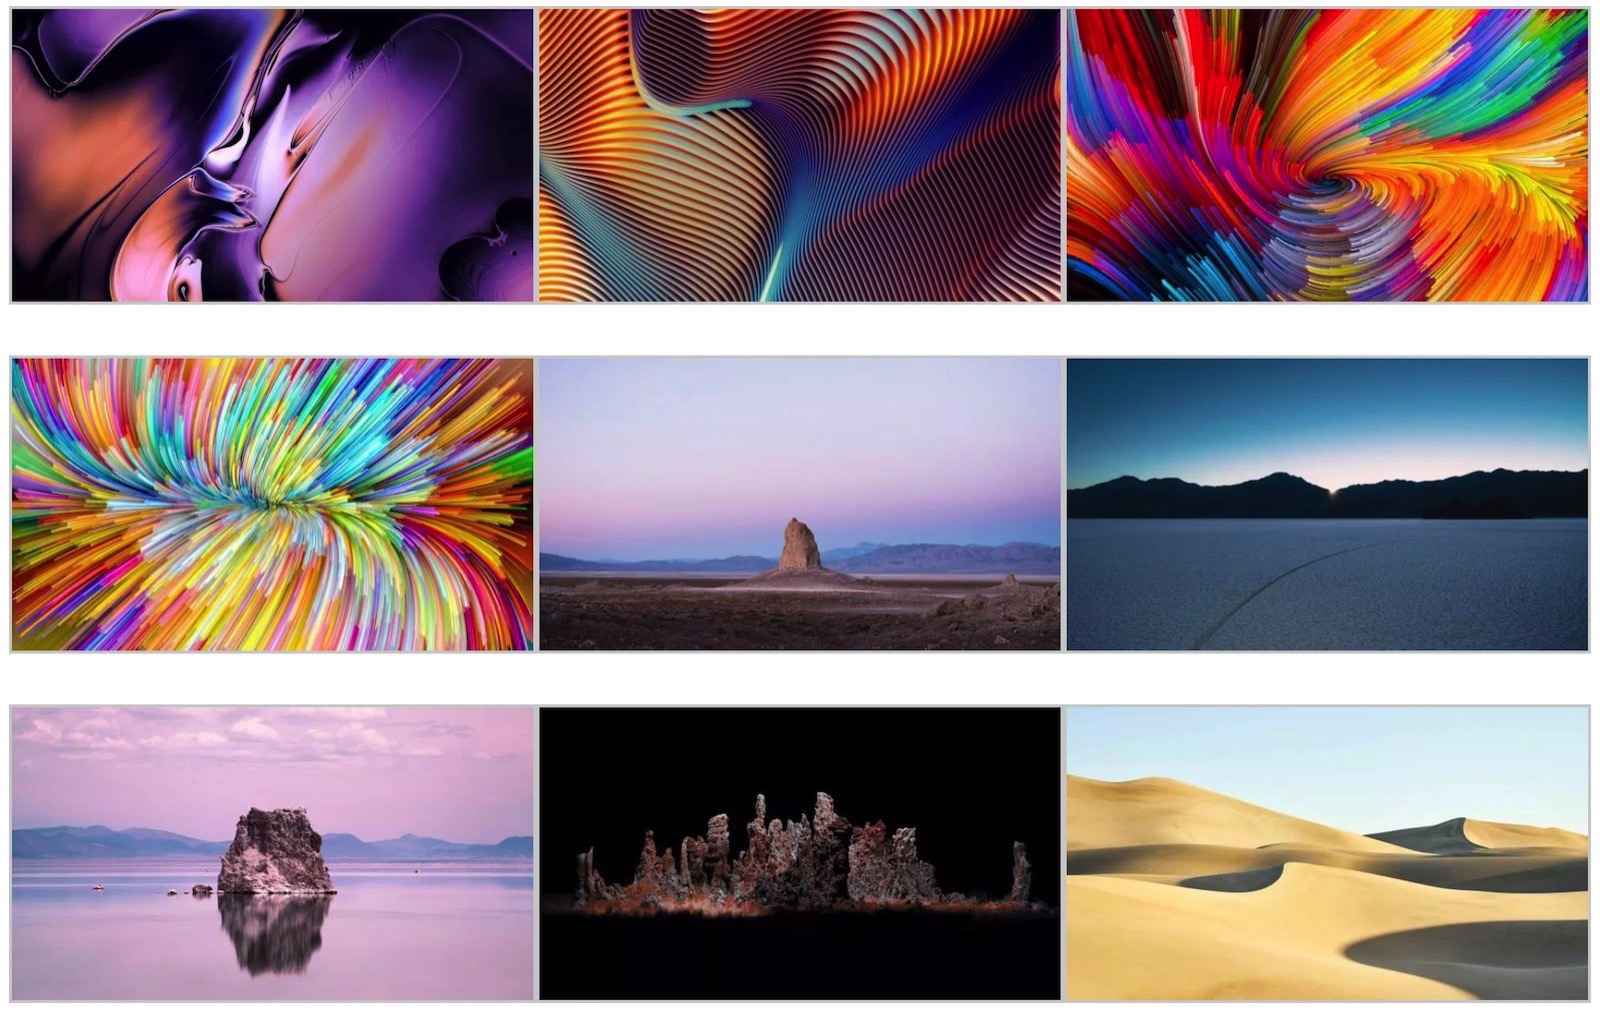 Macos mojave official marketing wallpapers